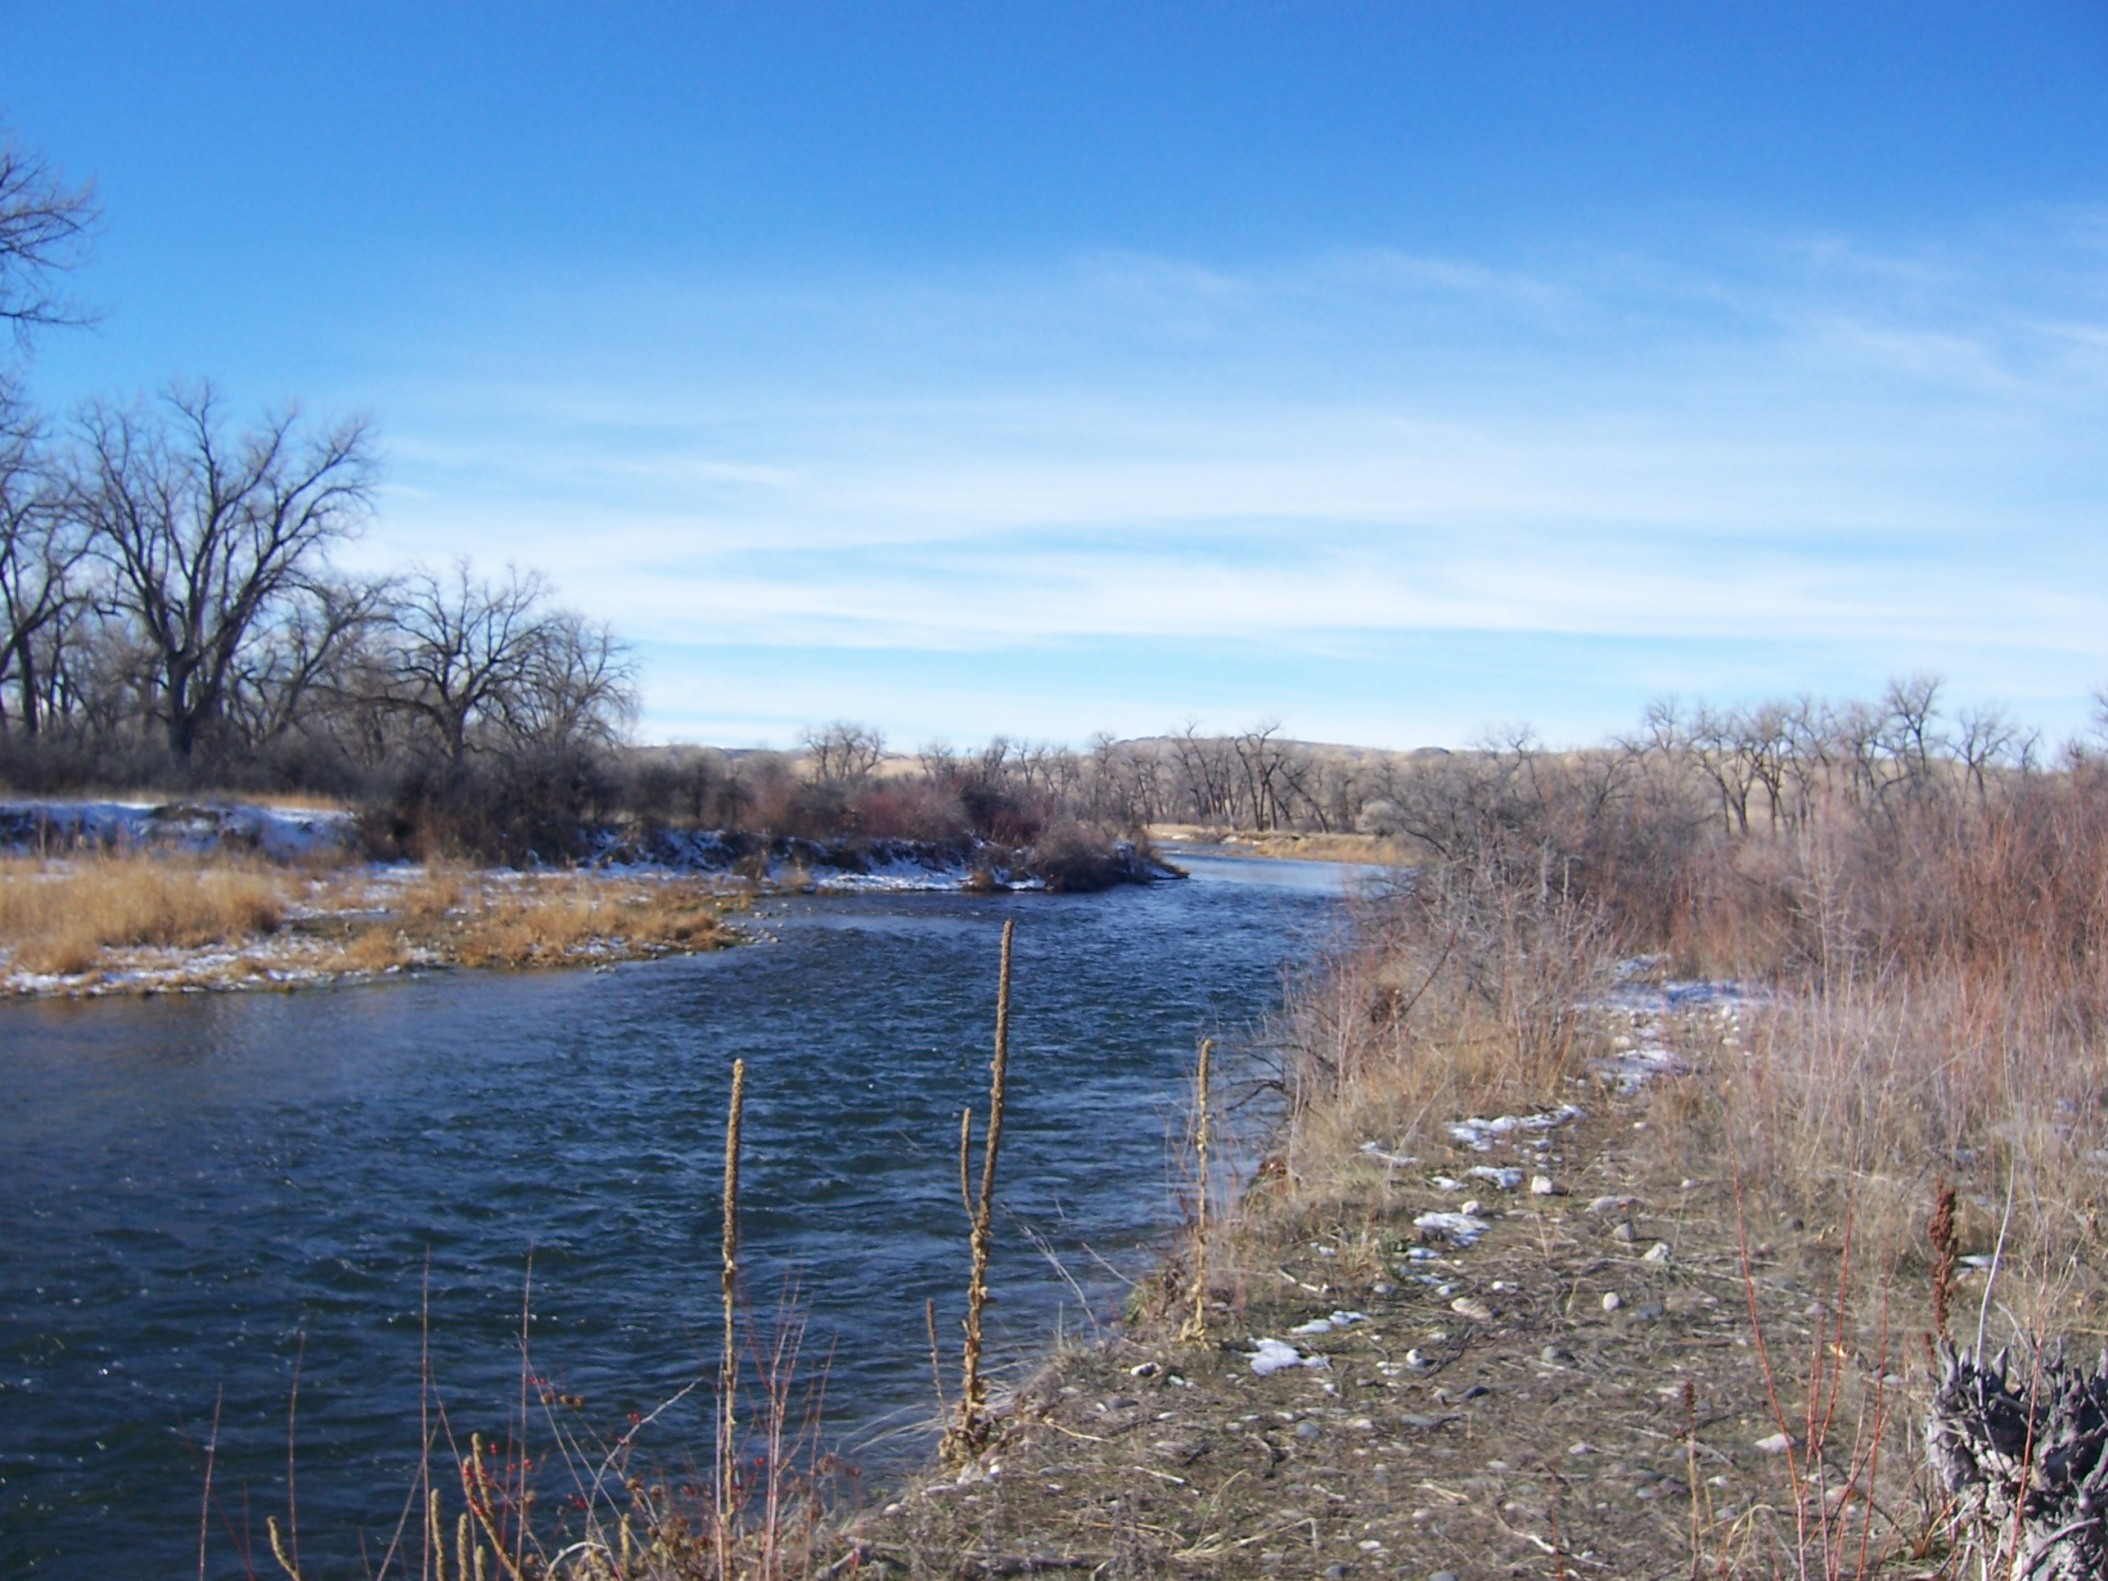 The Big Horn River